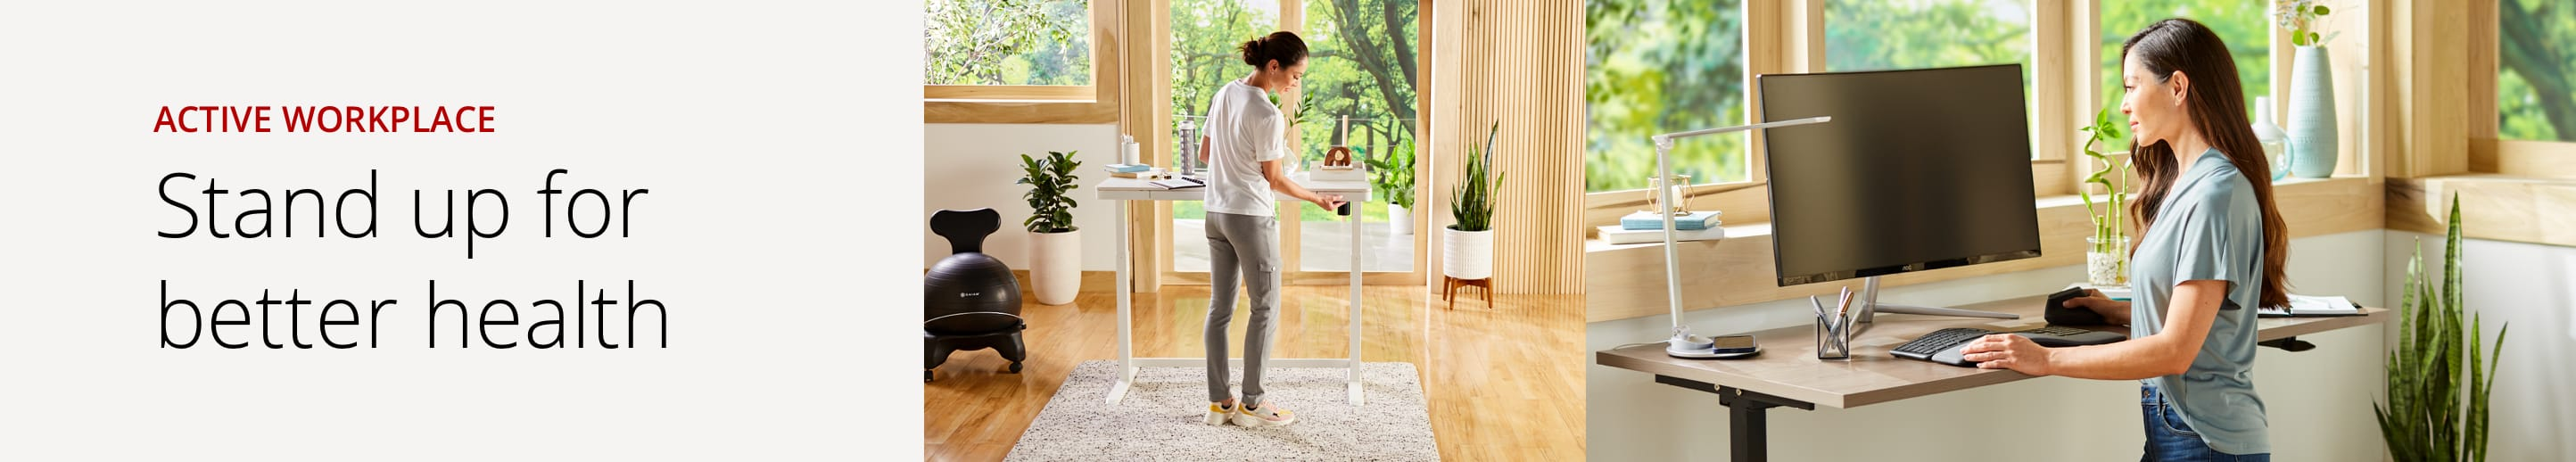 active workplace man at standing desk and woman sitting